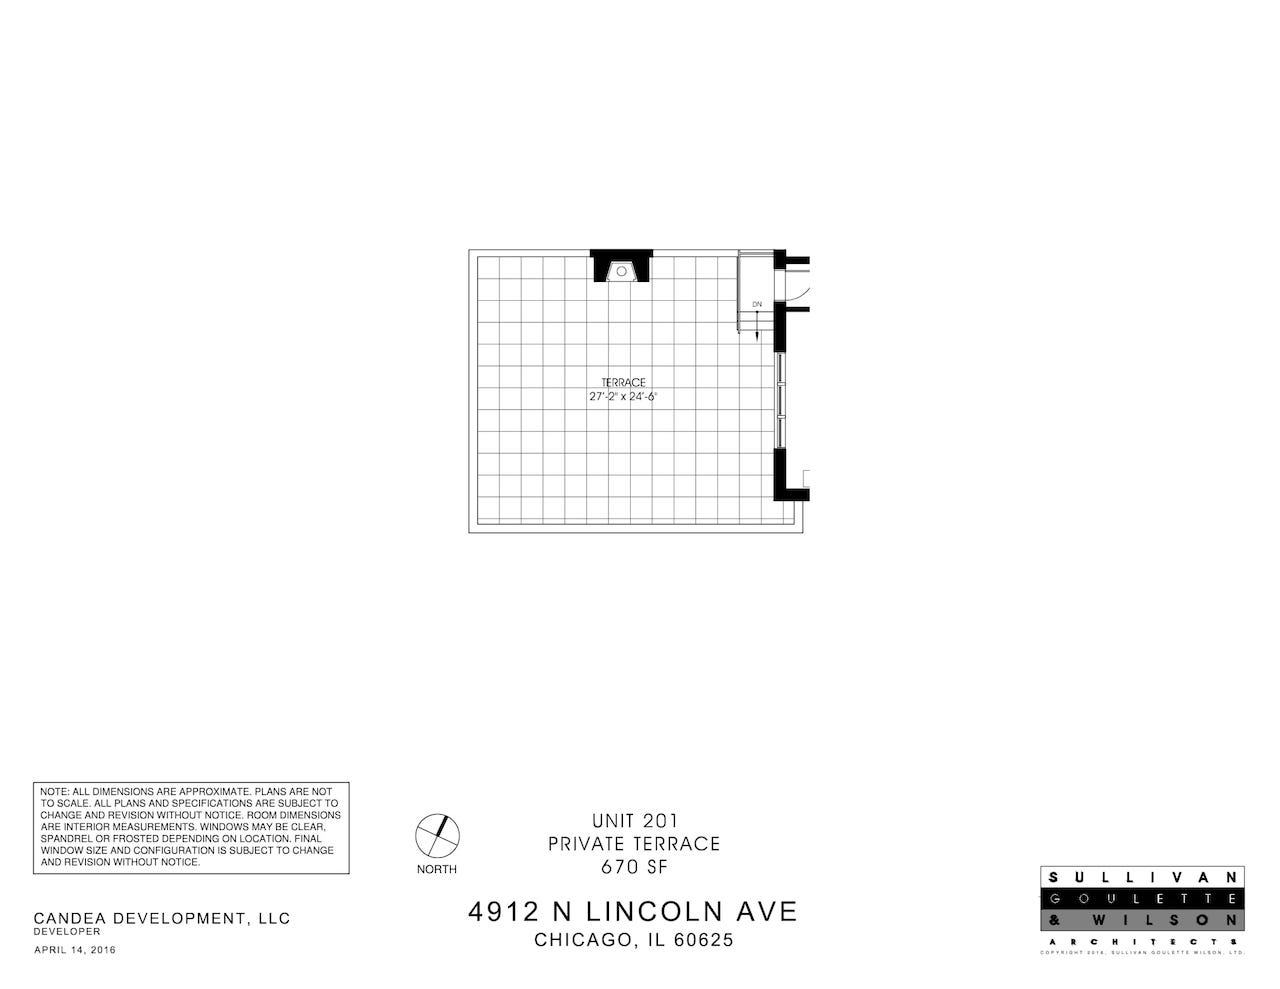 Lincoln4912N_Unit 201 Terrace-1